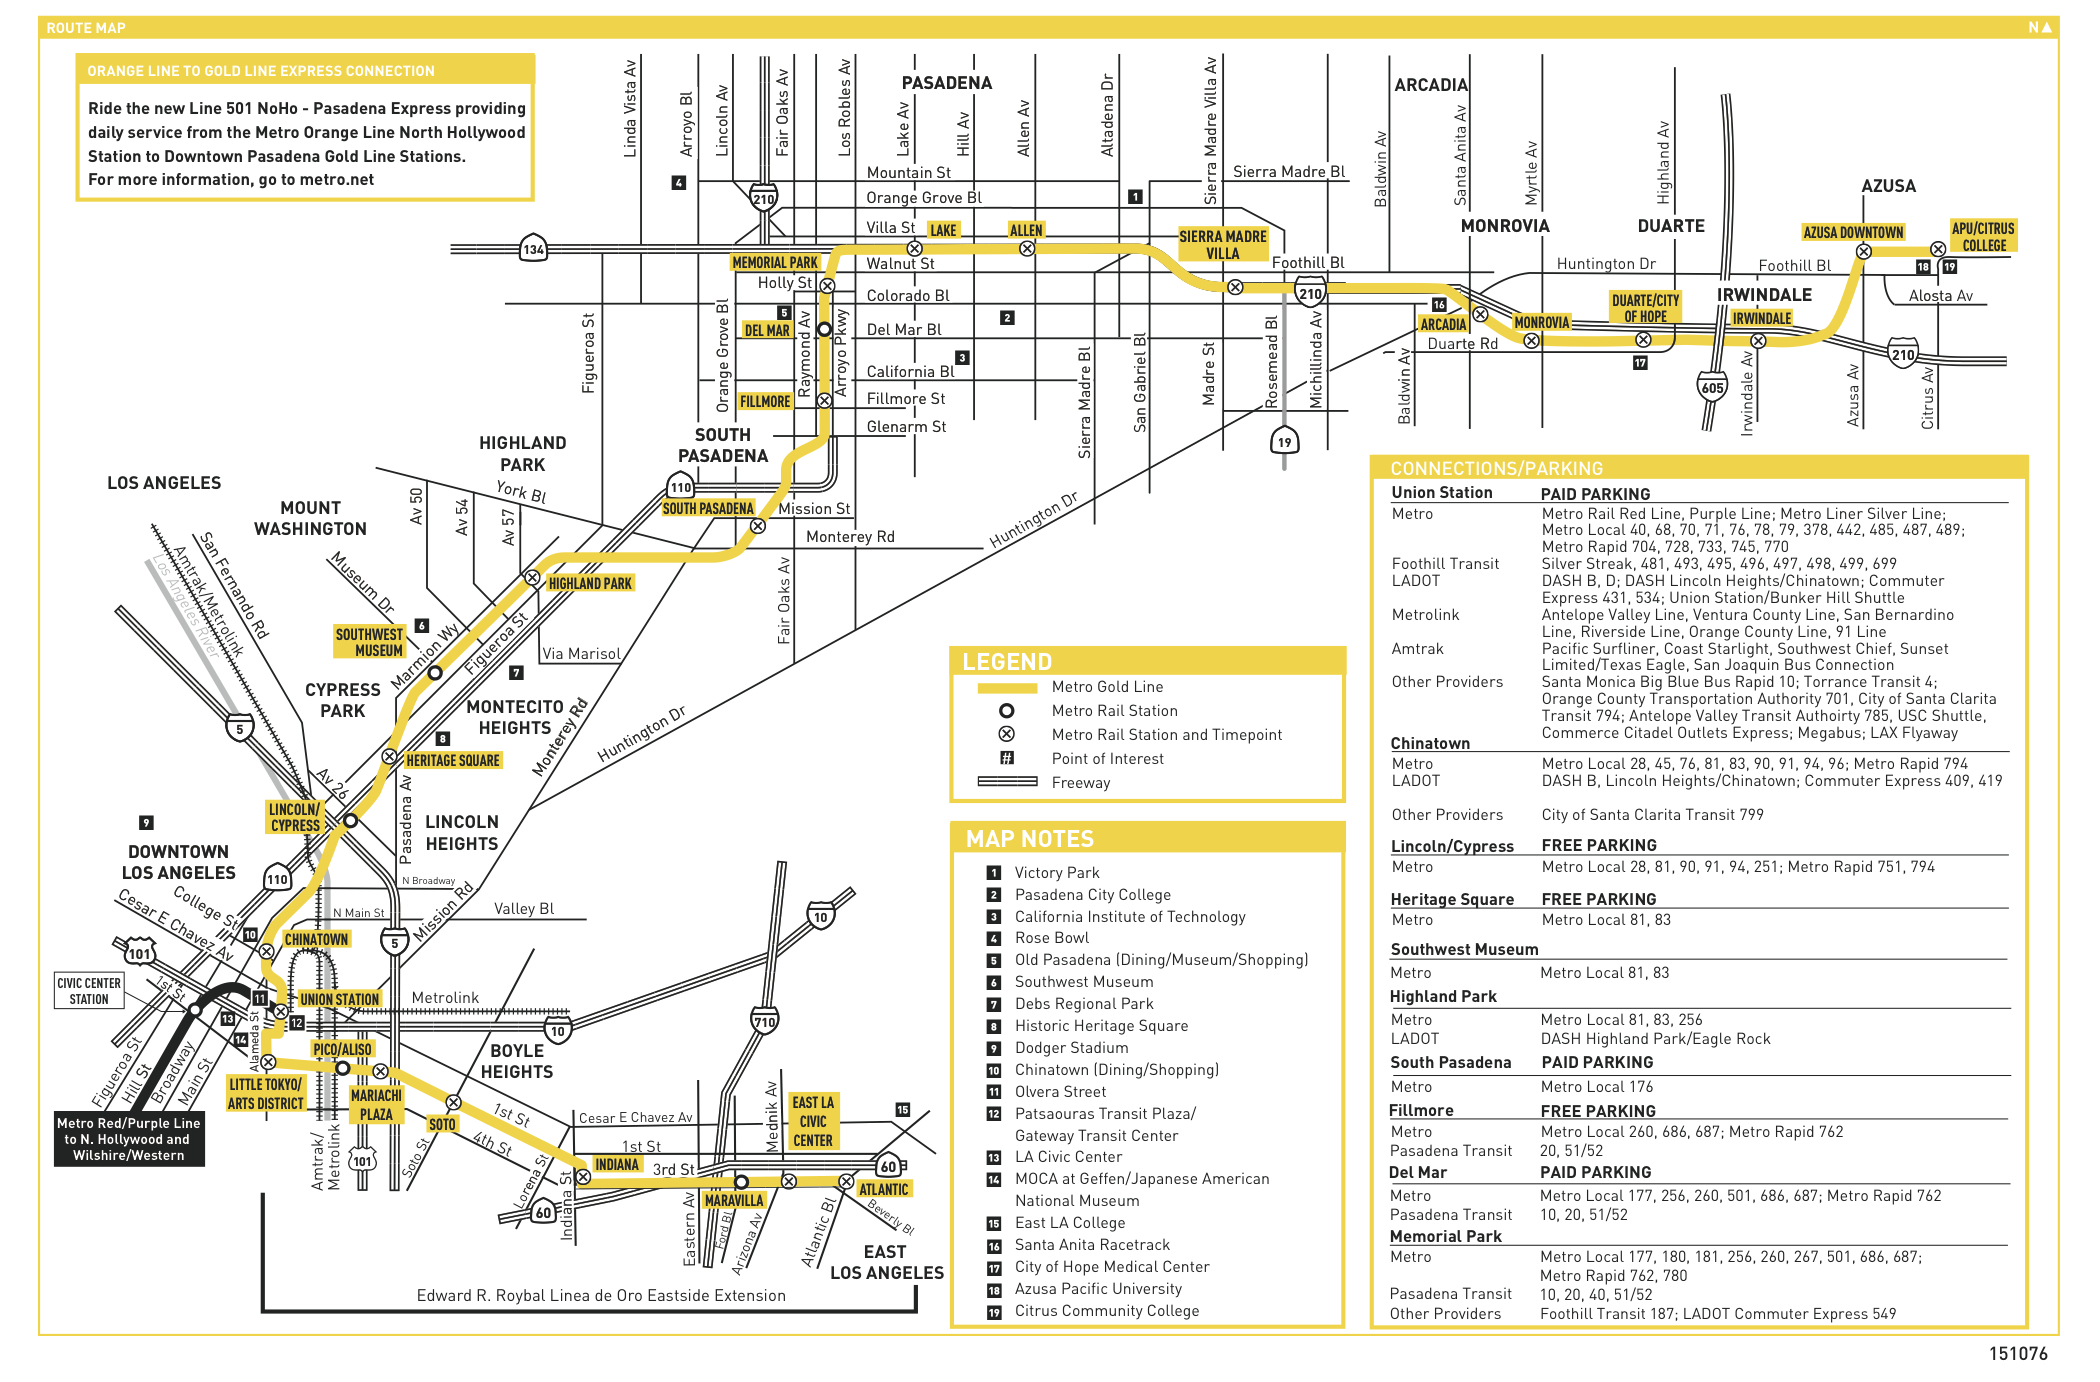 final update: gold line service restored between allen and arcadia